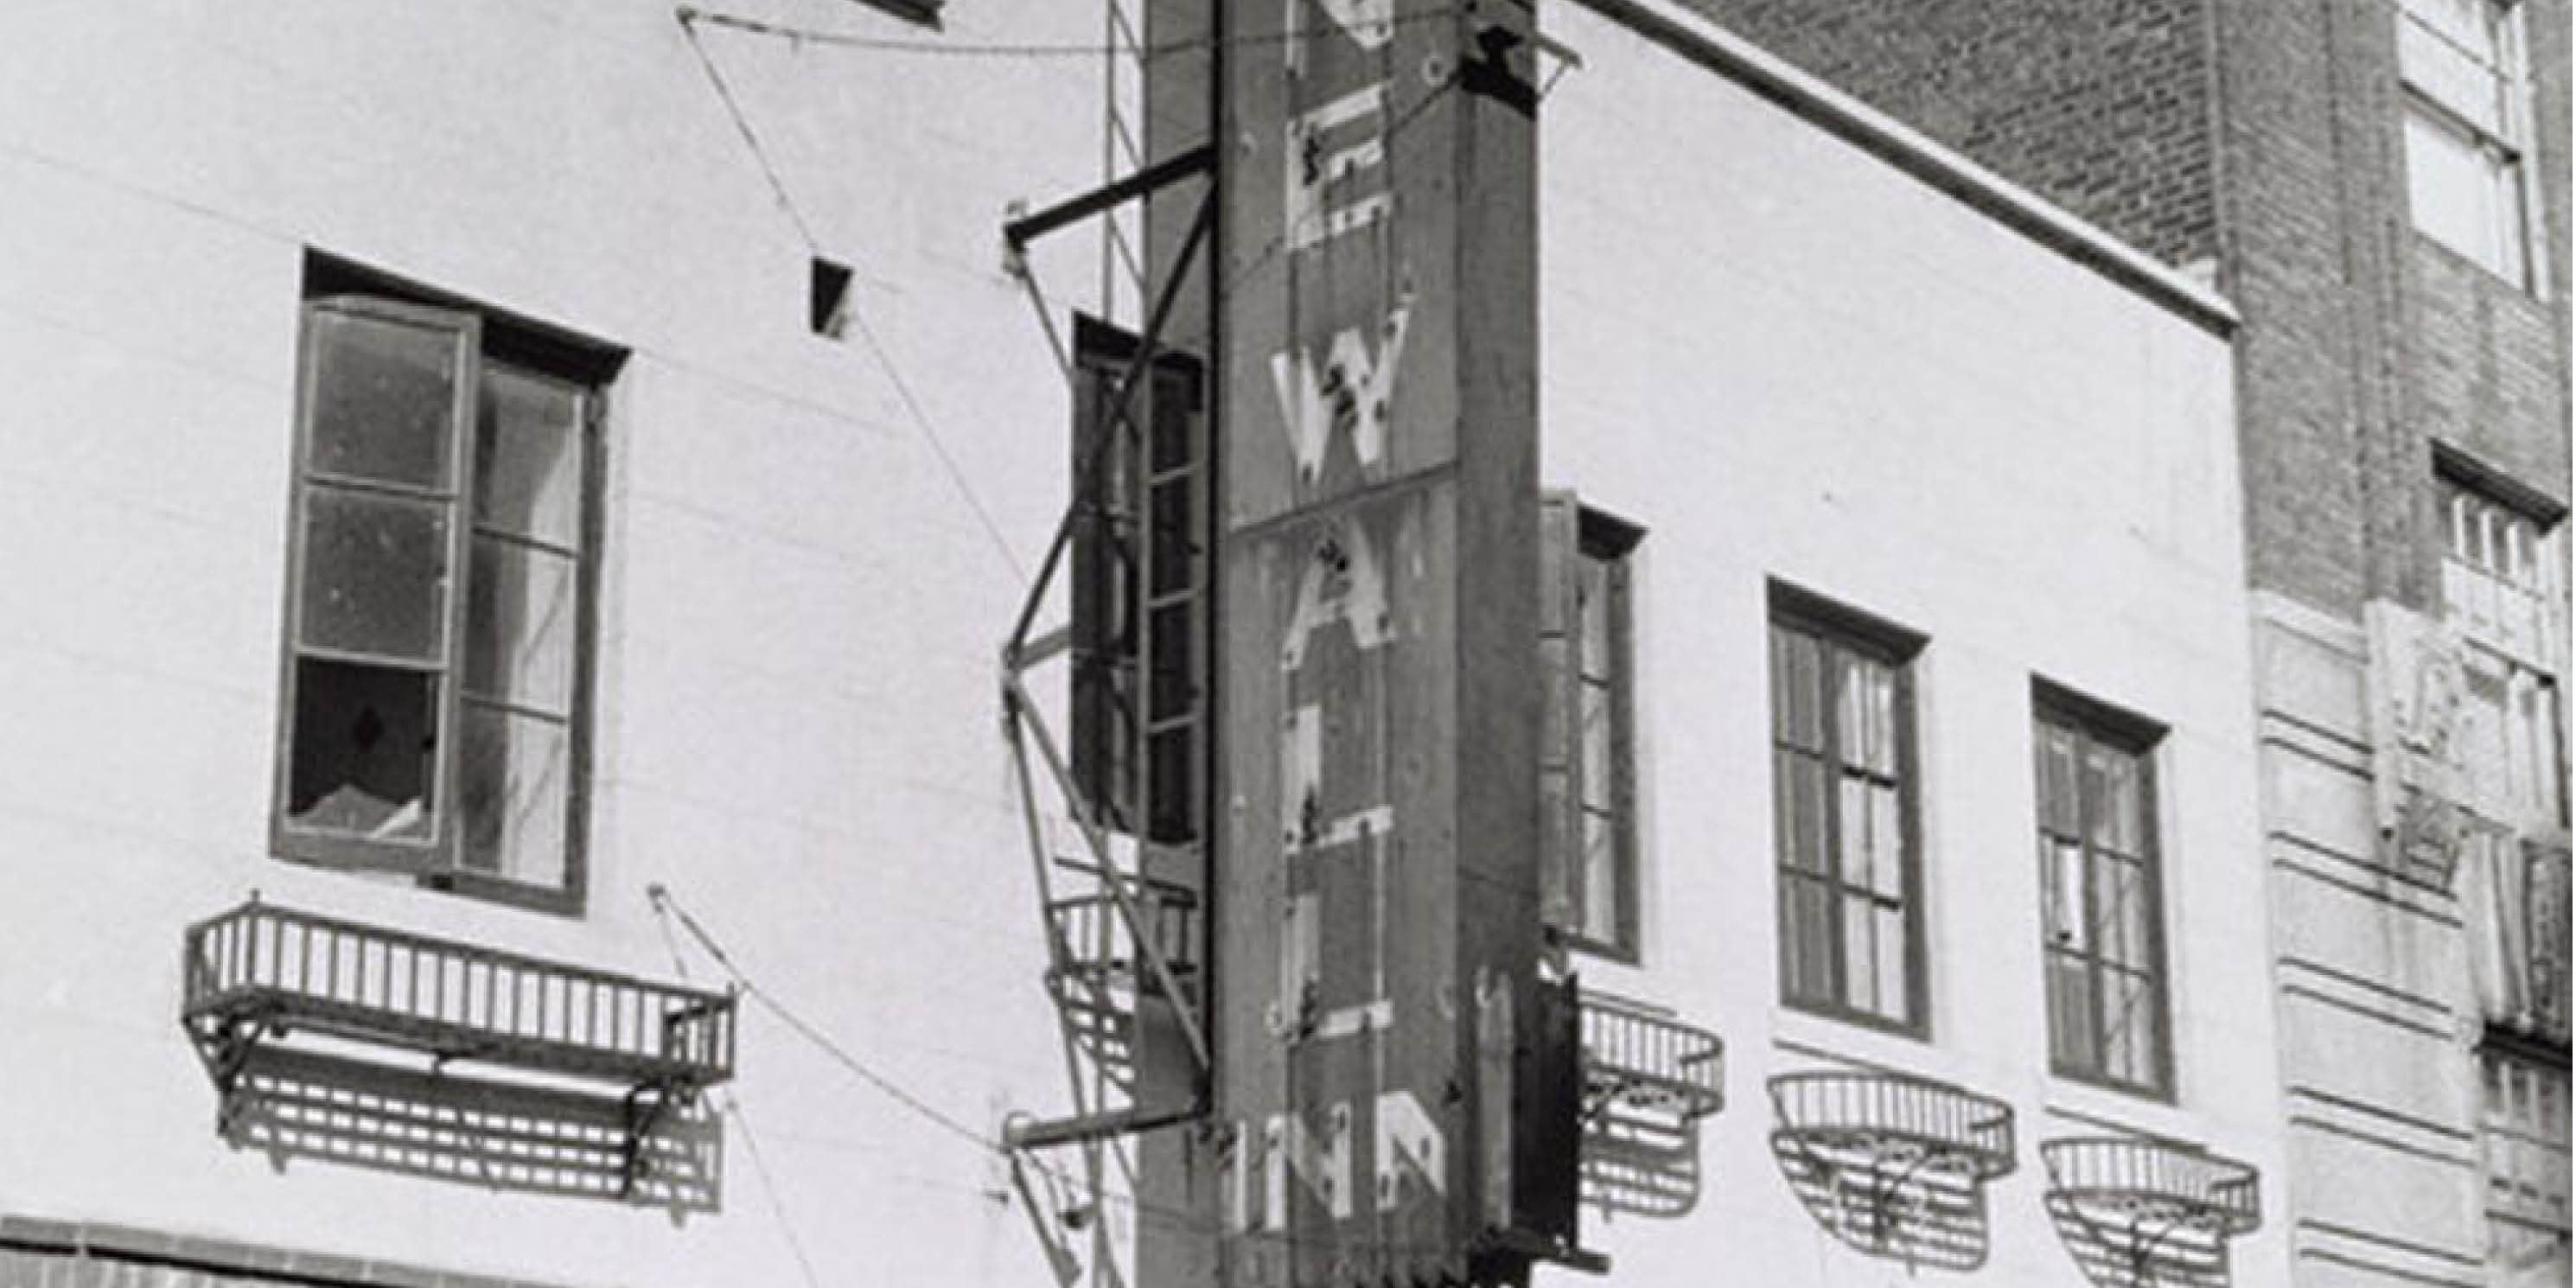 archival photo of the Stonewall Inn sign